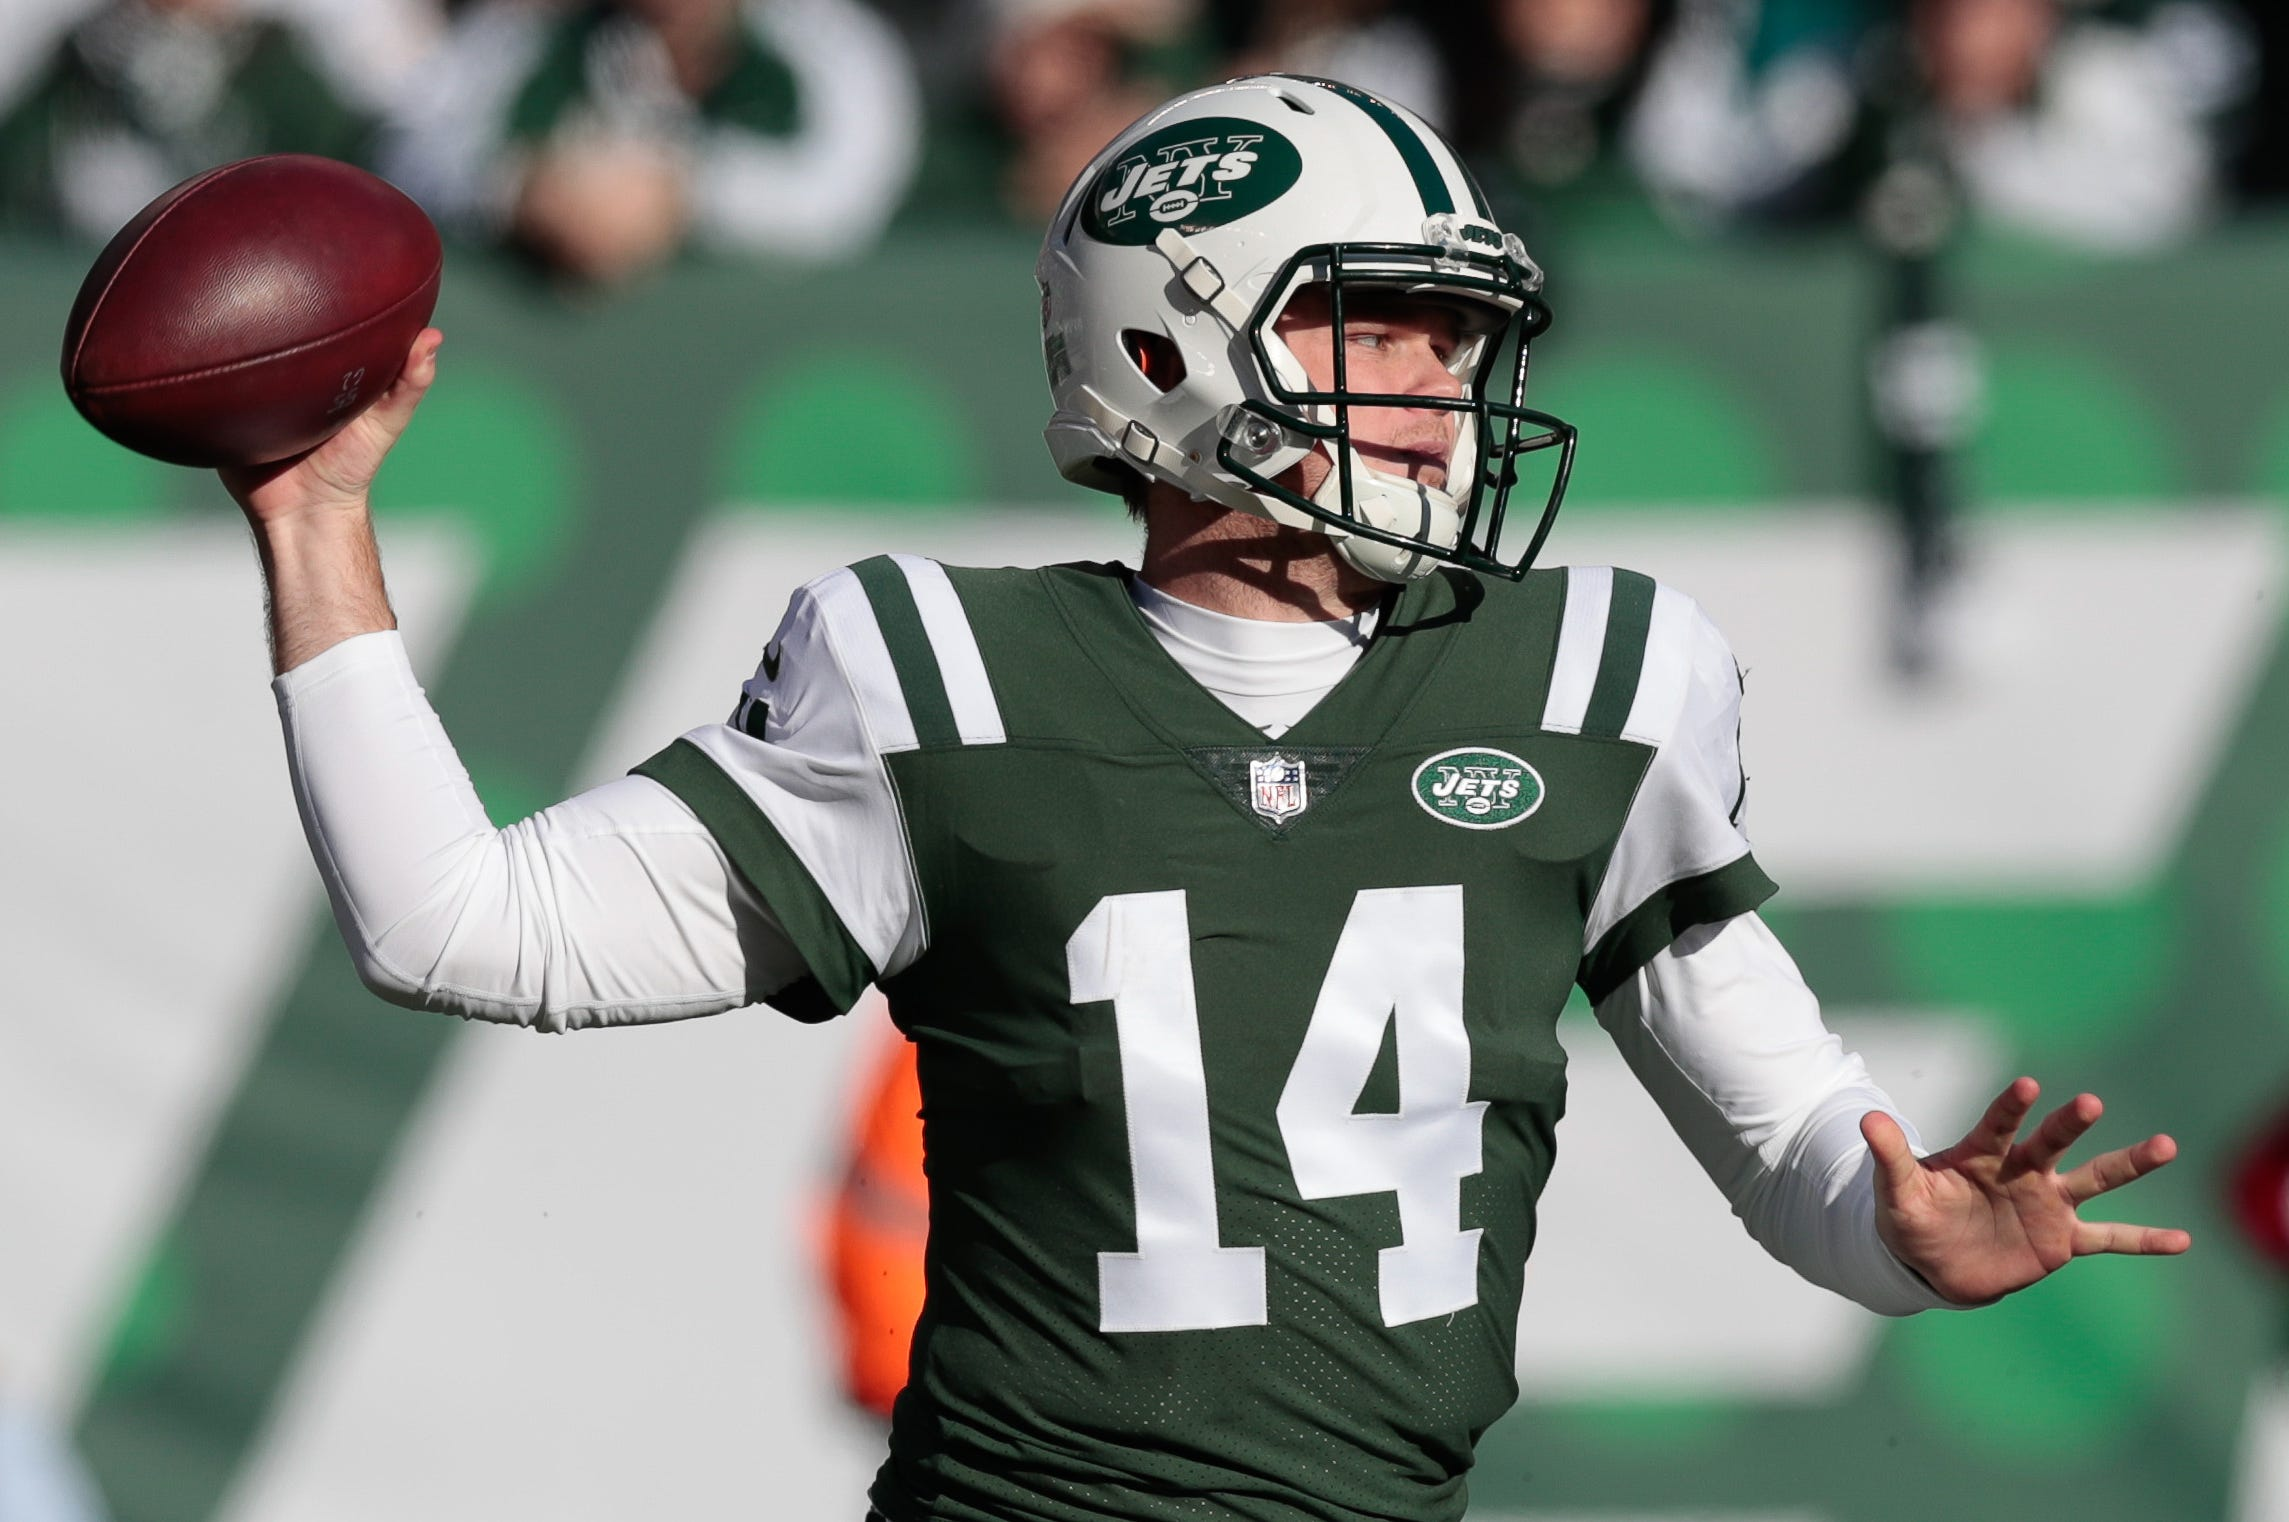 Celebrity Health: 23. Jets (24): New HC Adam Gase inherits QB Sam Darnold, draft's third overall pick and $90 million in cap space. Is young team finally ready for takeoff?